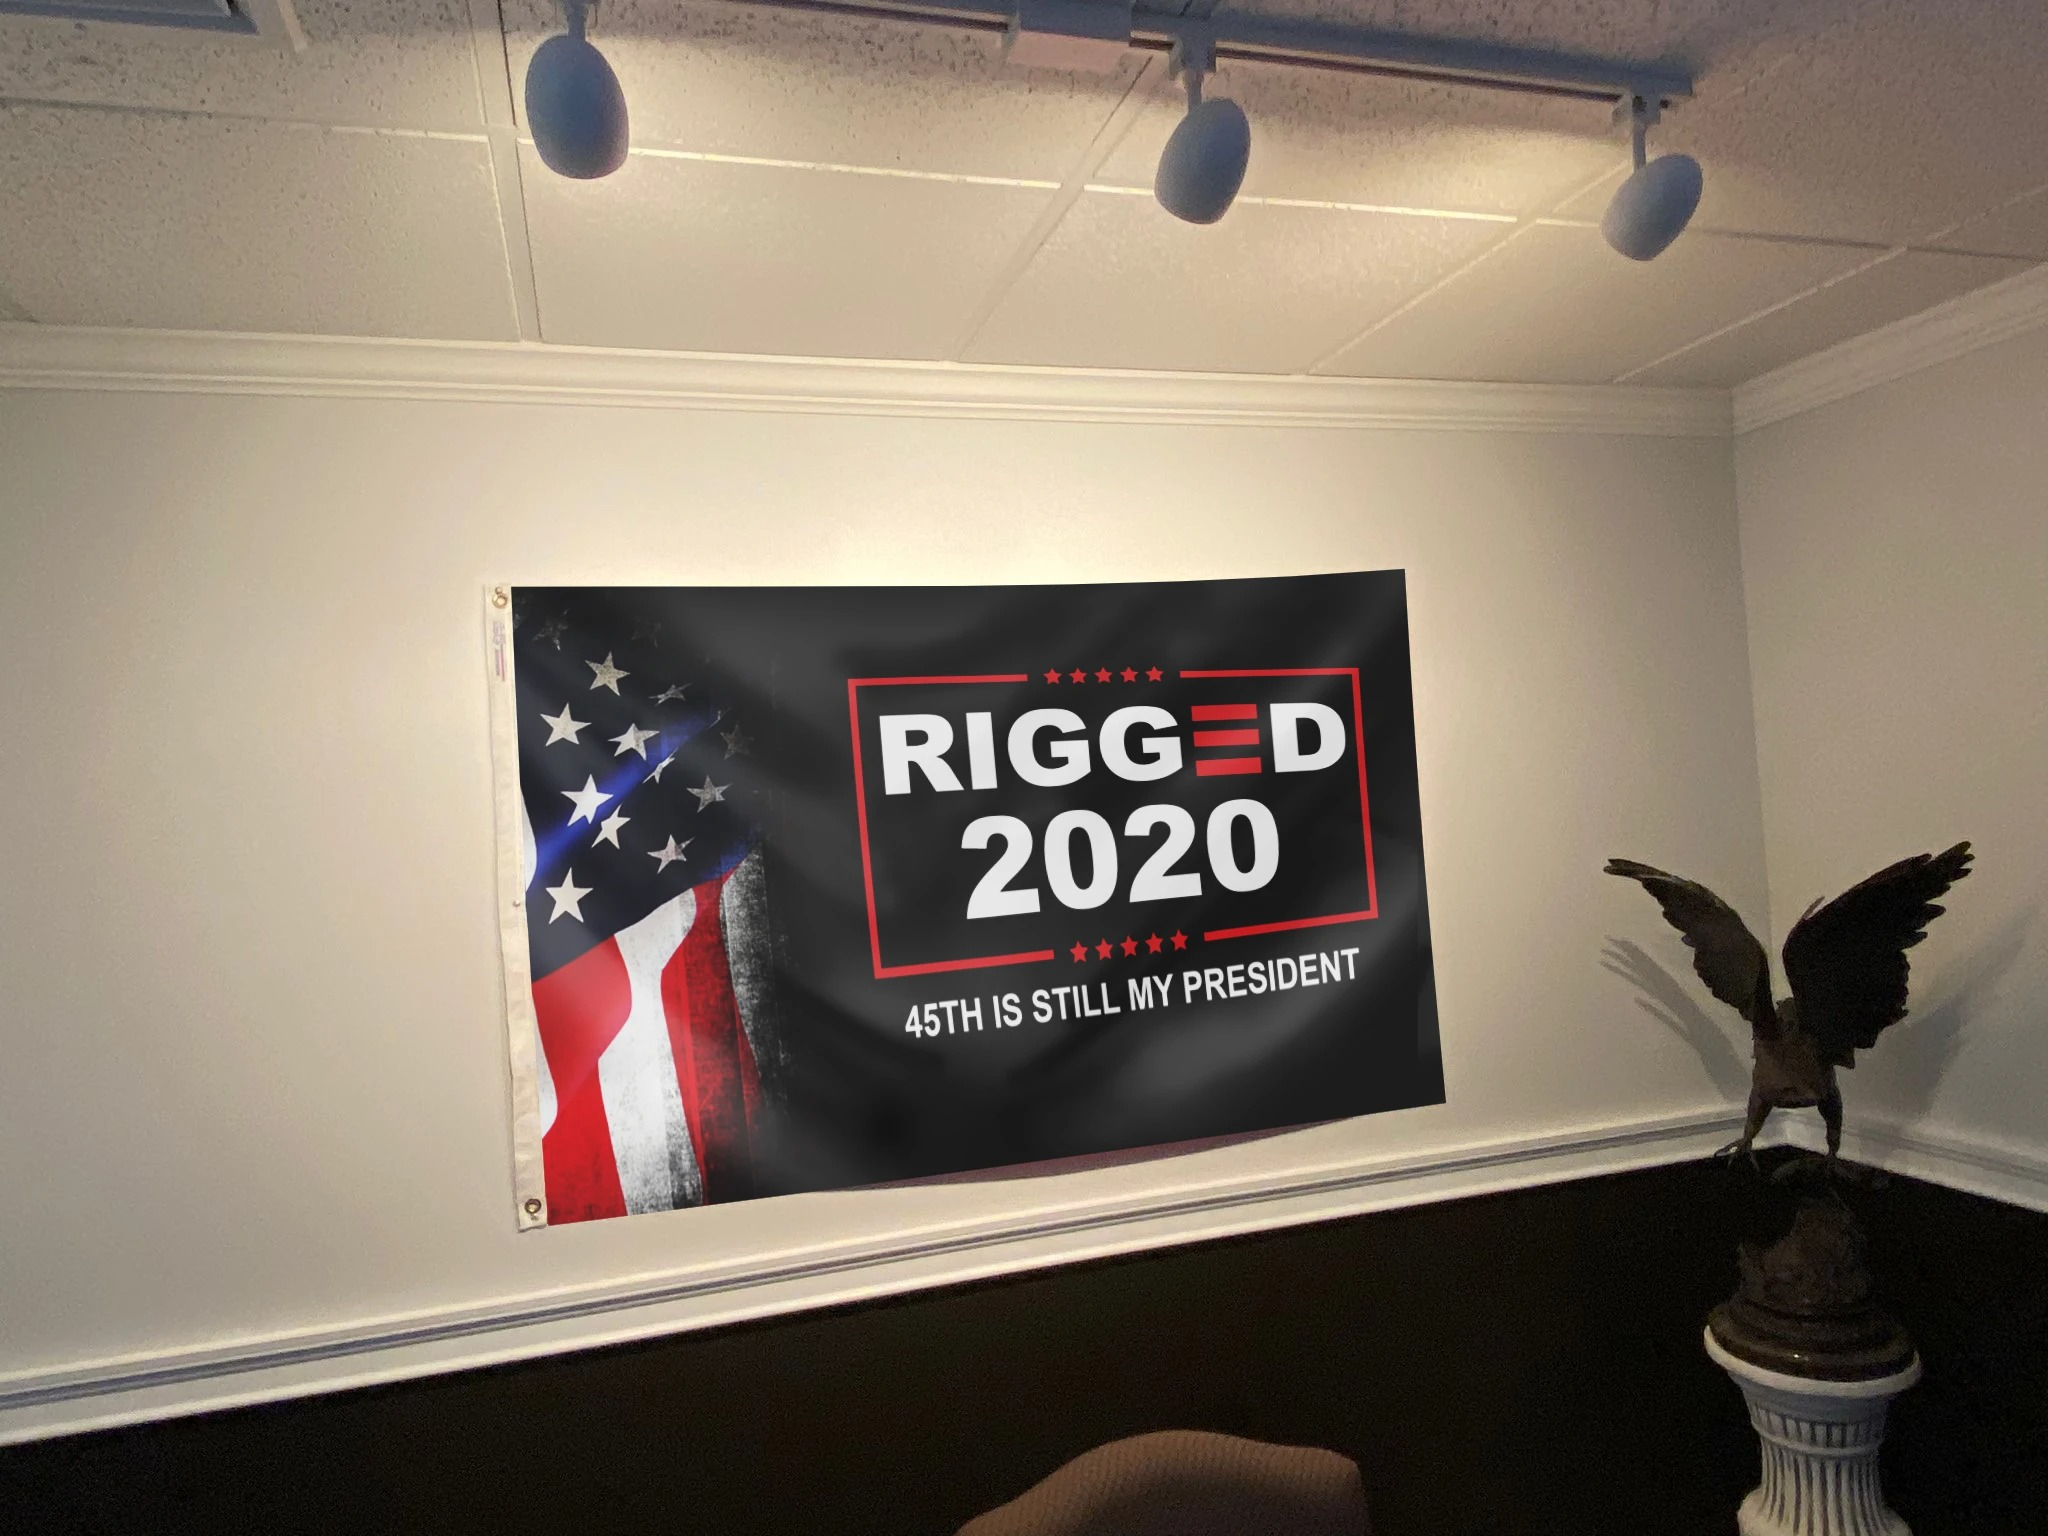 Rigged 2020 45th is still my president flag Picture 2